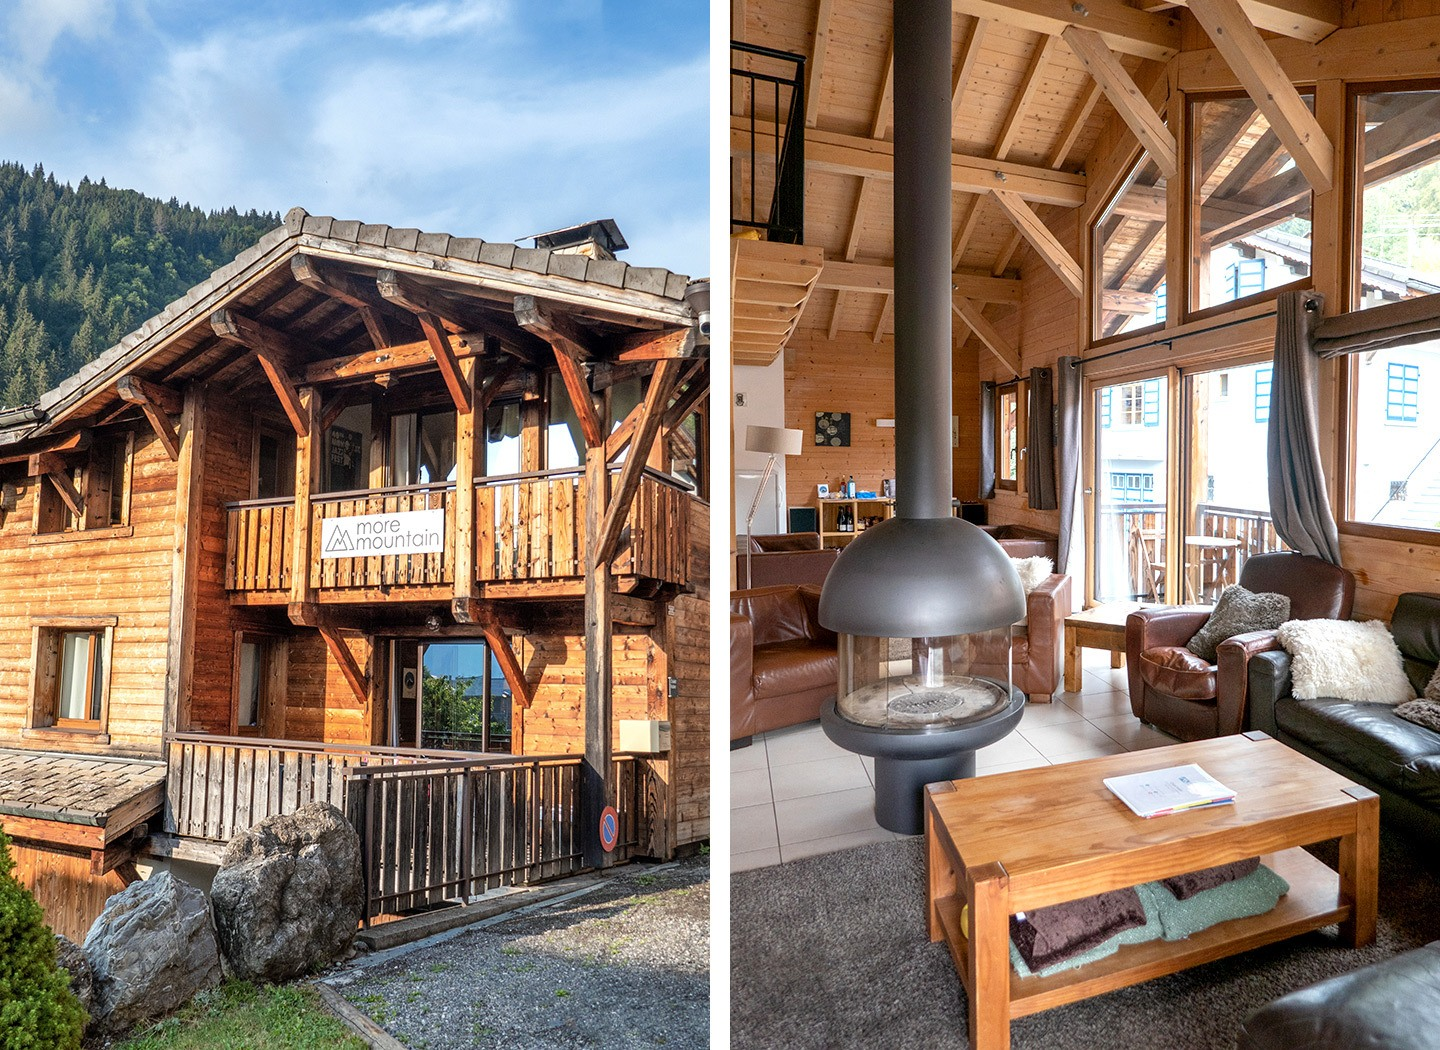 More Mountain Chalet in Morzine